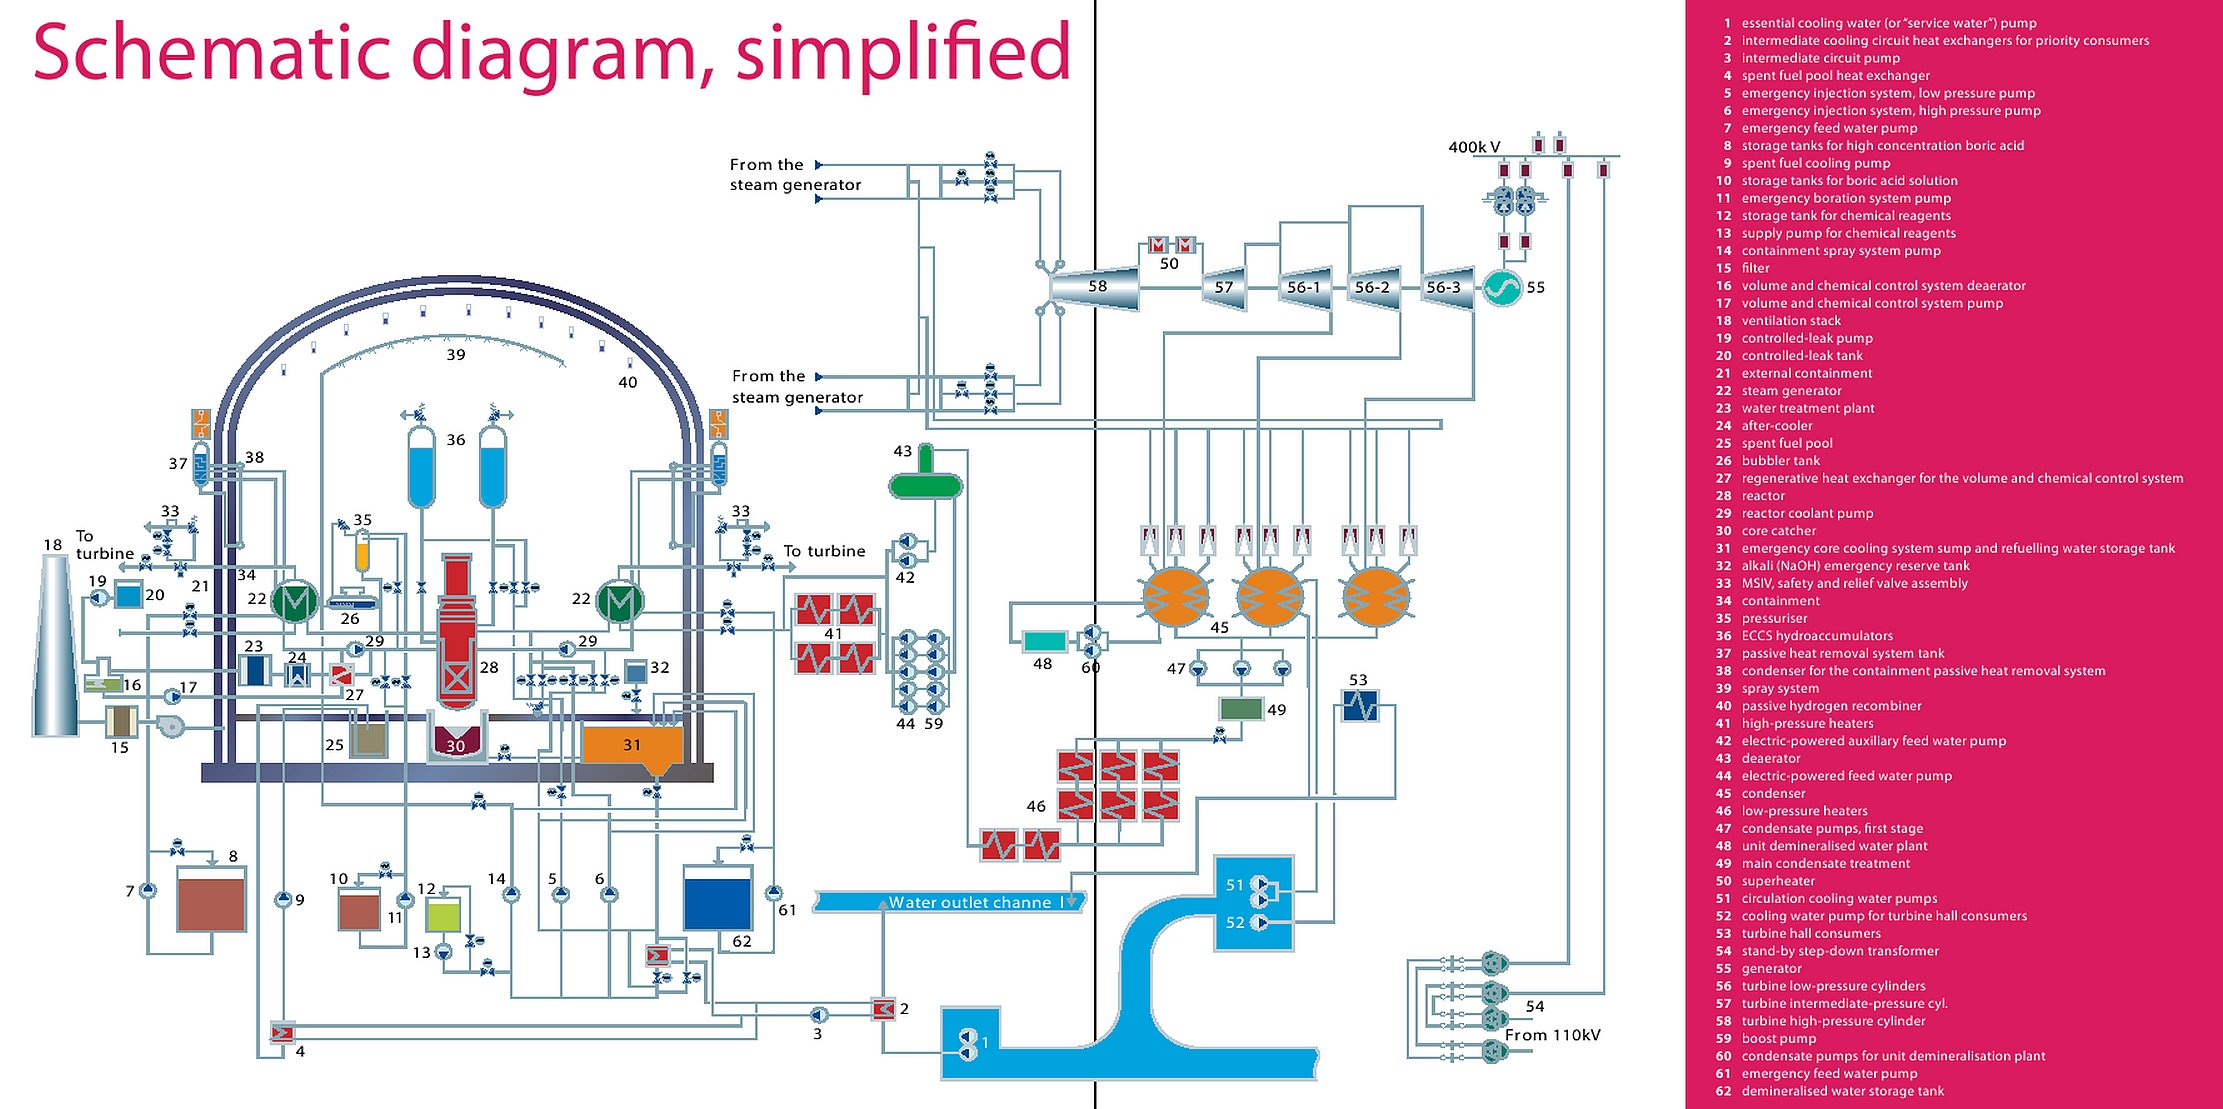 This illustration highlights the major systems cycles involved nuclear power plant flowchart tn ccuart Gallery